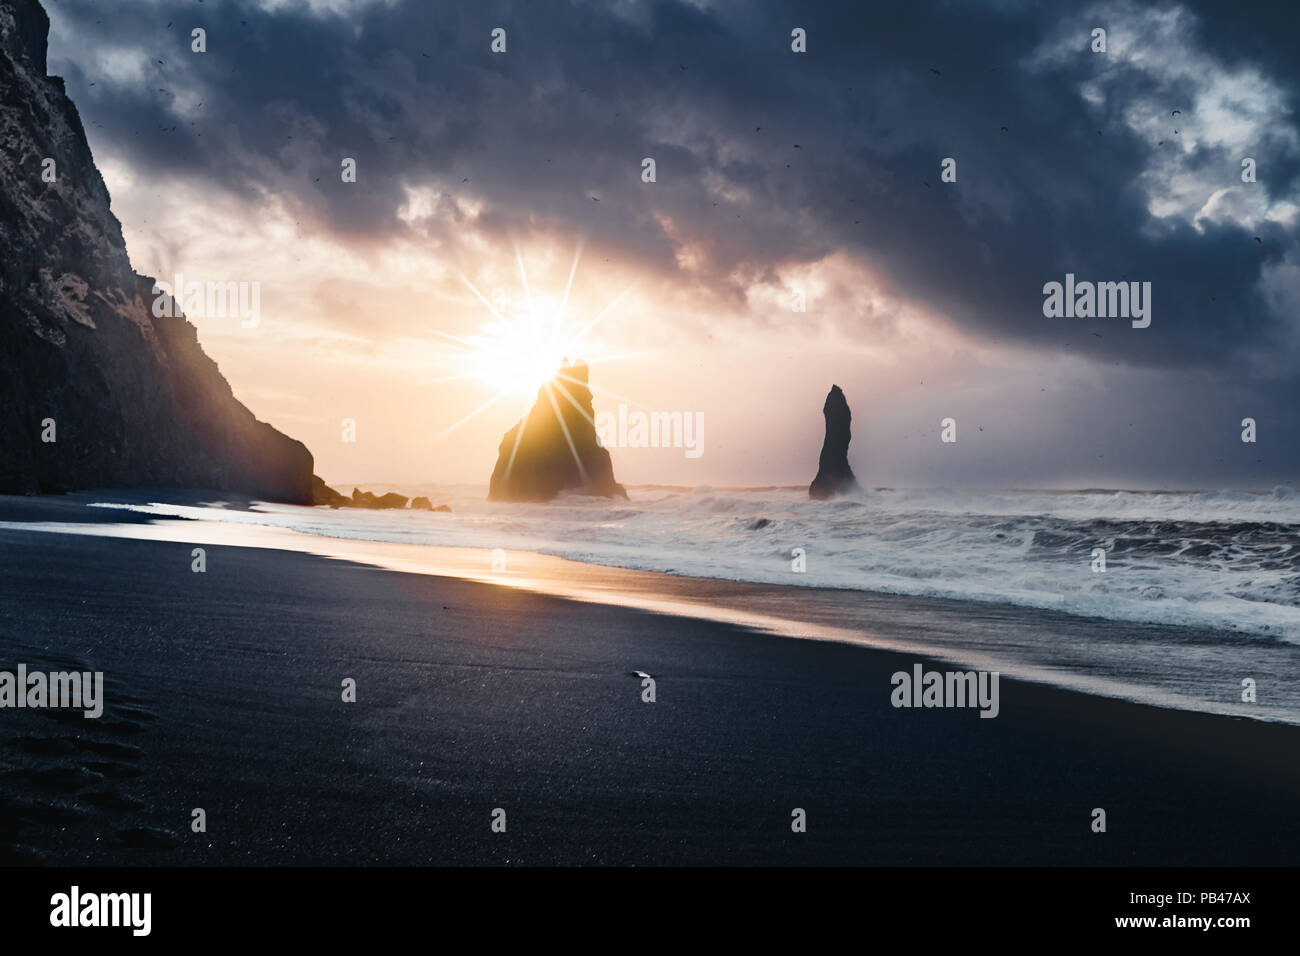 Sunrise at famous Black Sand Beach Reynisfjara in Iceland. Windy Morning. Ocean Waves. Colorful Sky. Morning Sunset. - Stock Image